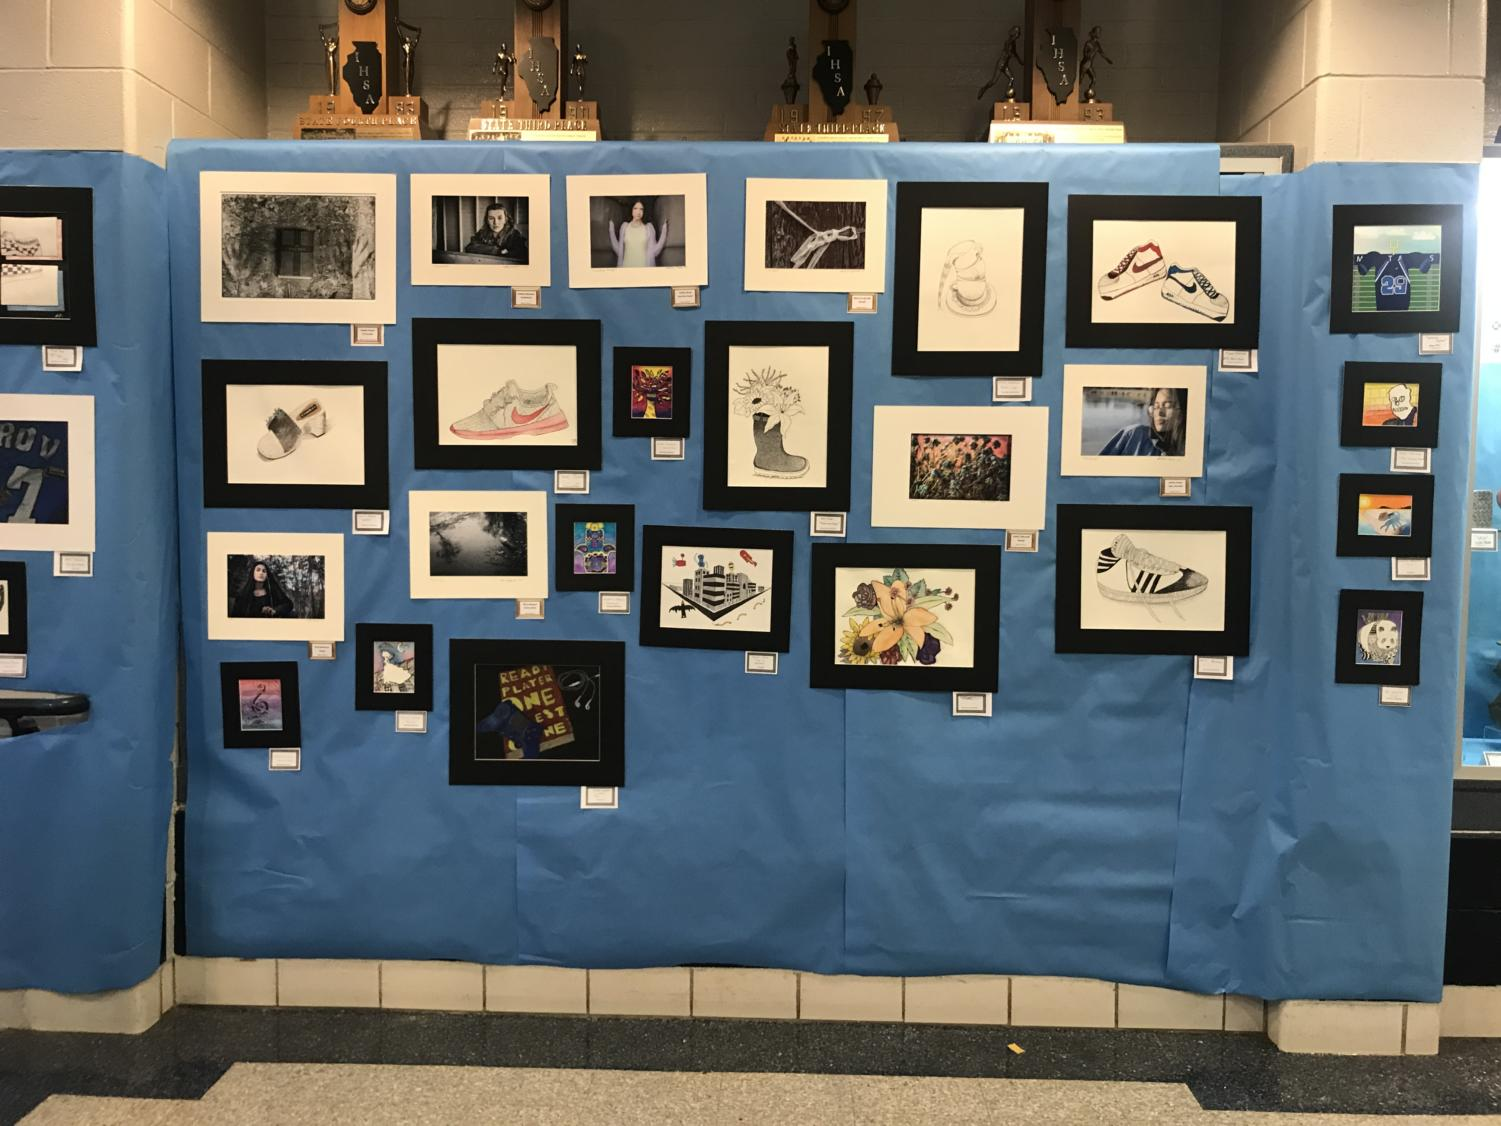 Artwork+from+underclassman+involving+photography%2C+design%2C+drawings+and+paintings.+